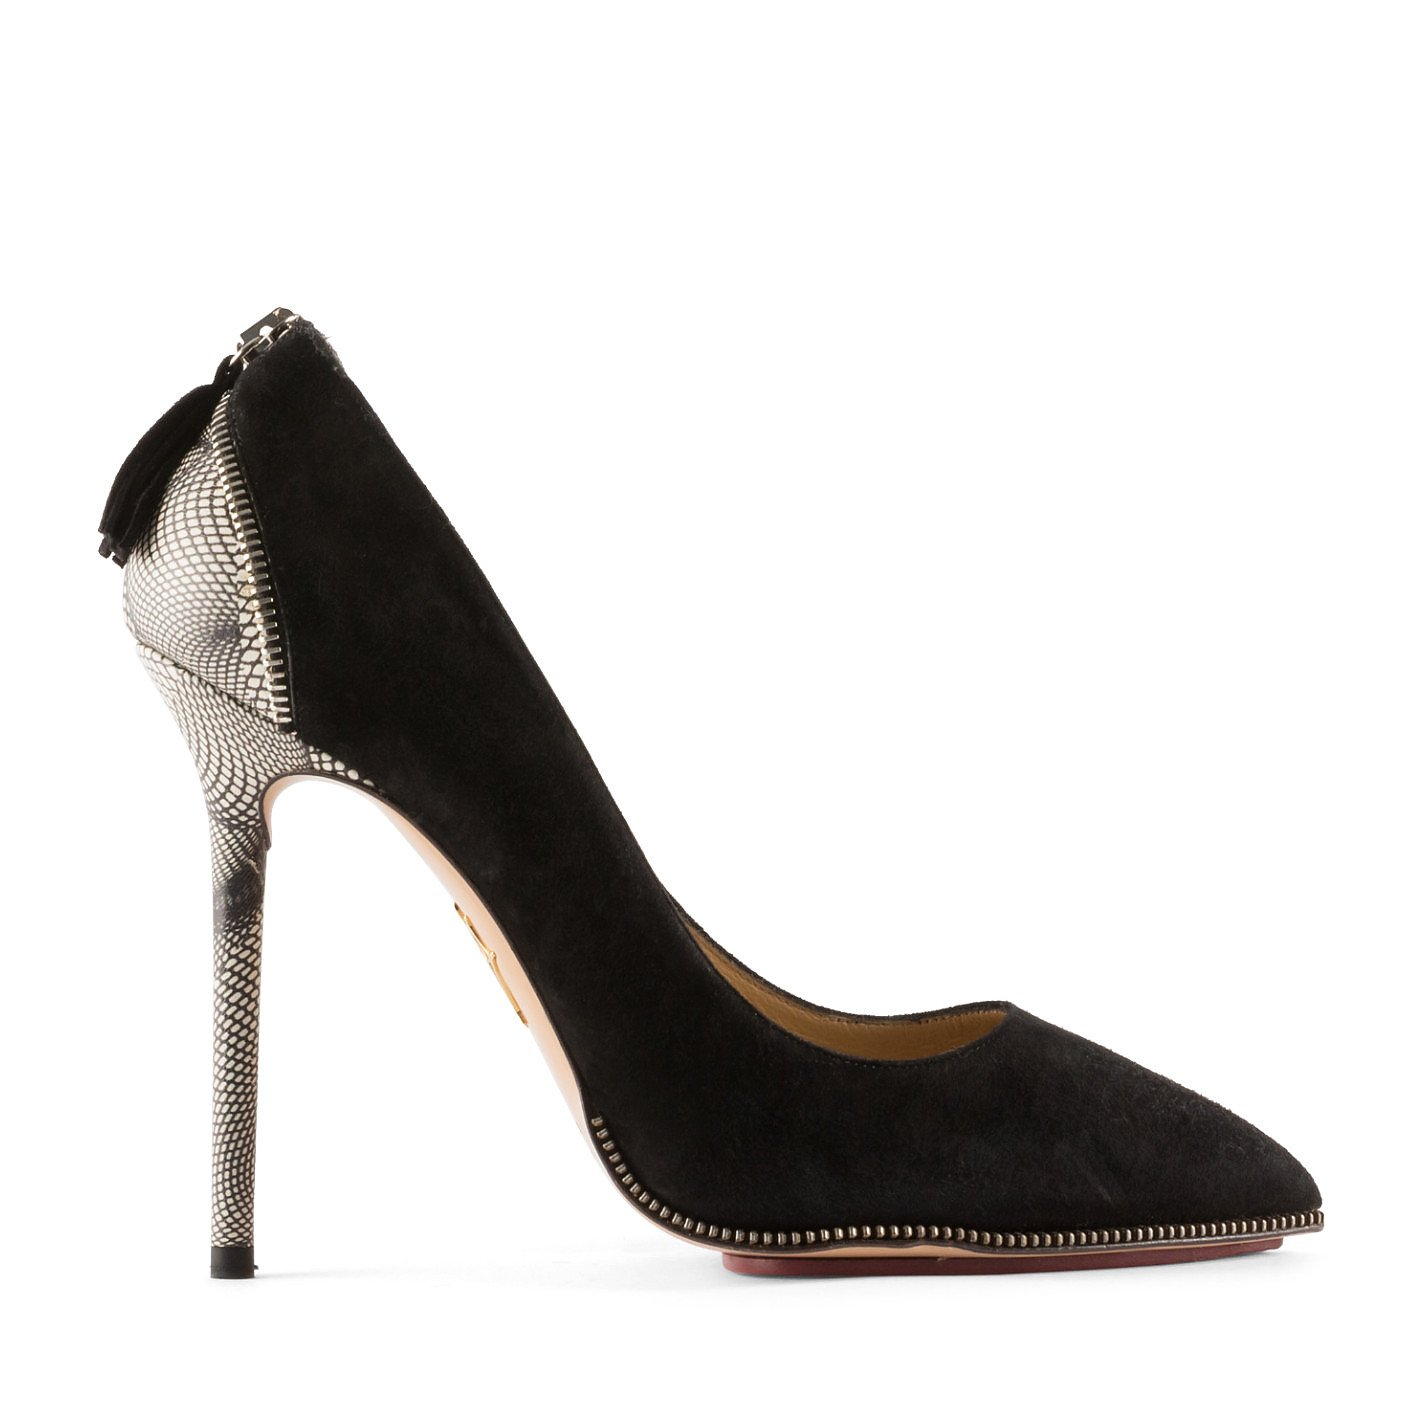 Charlotte Olympia Zip-Trimmed Pumps